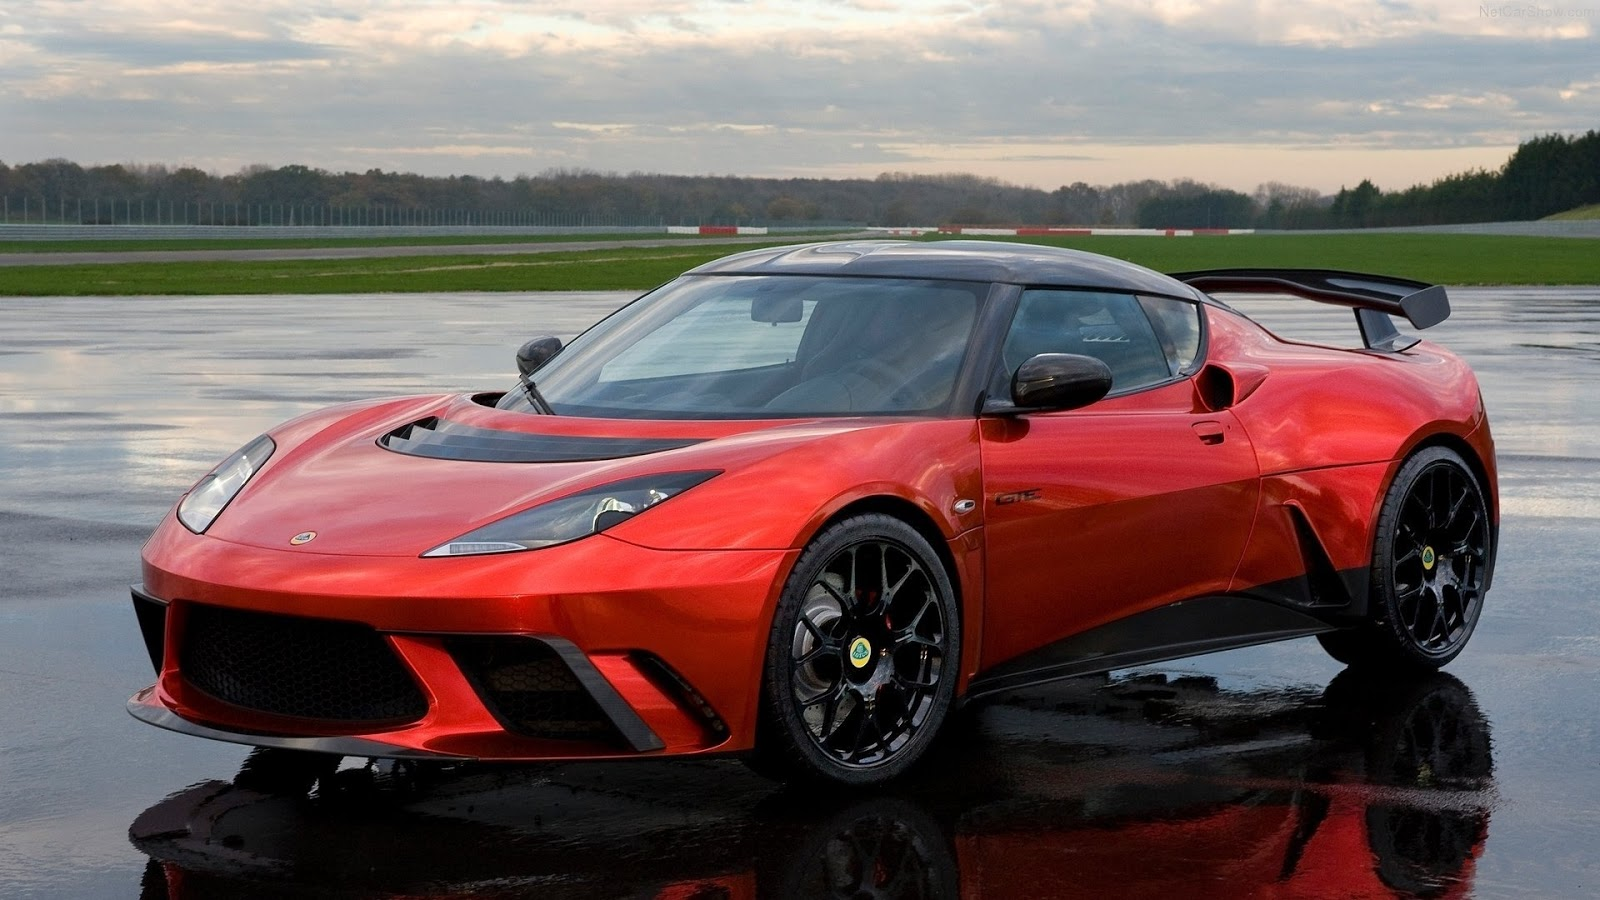 S Lotus Wallpaper Evora